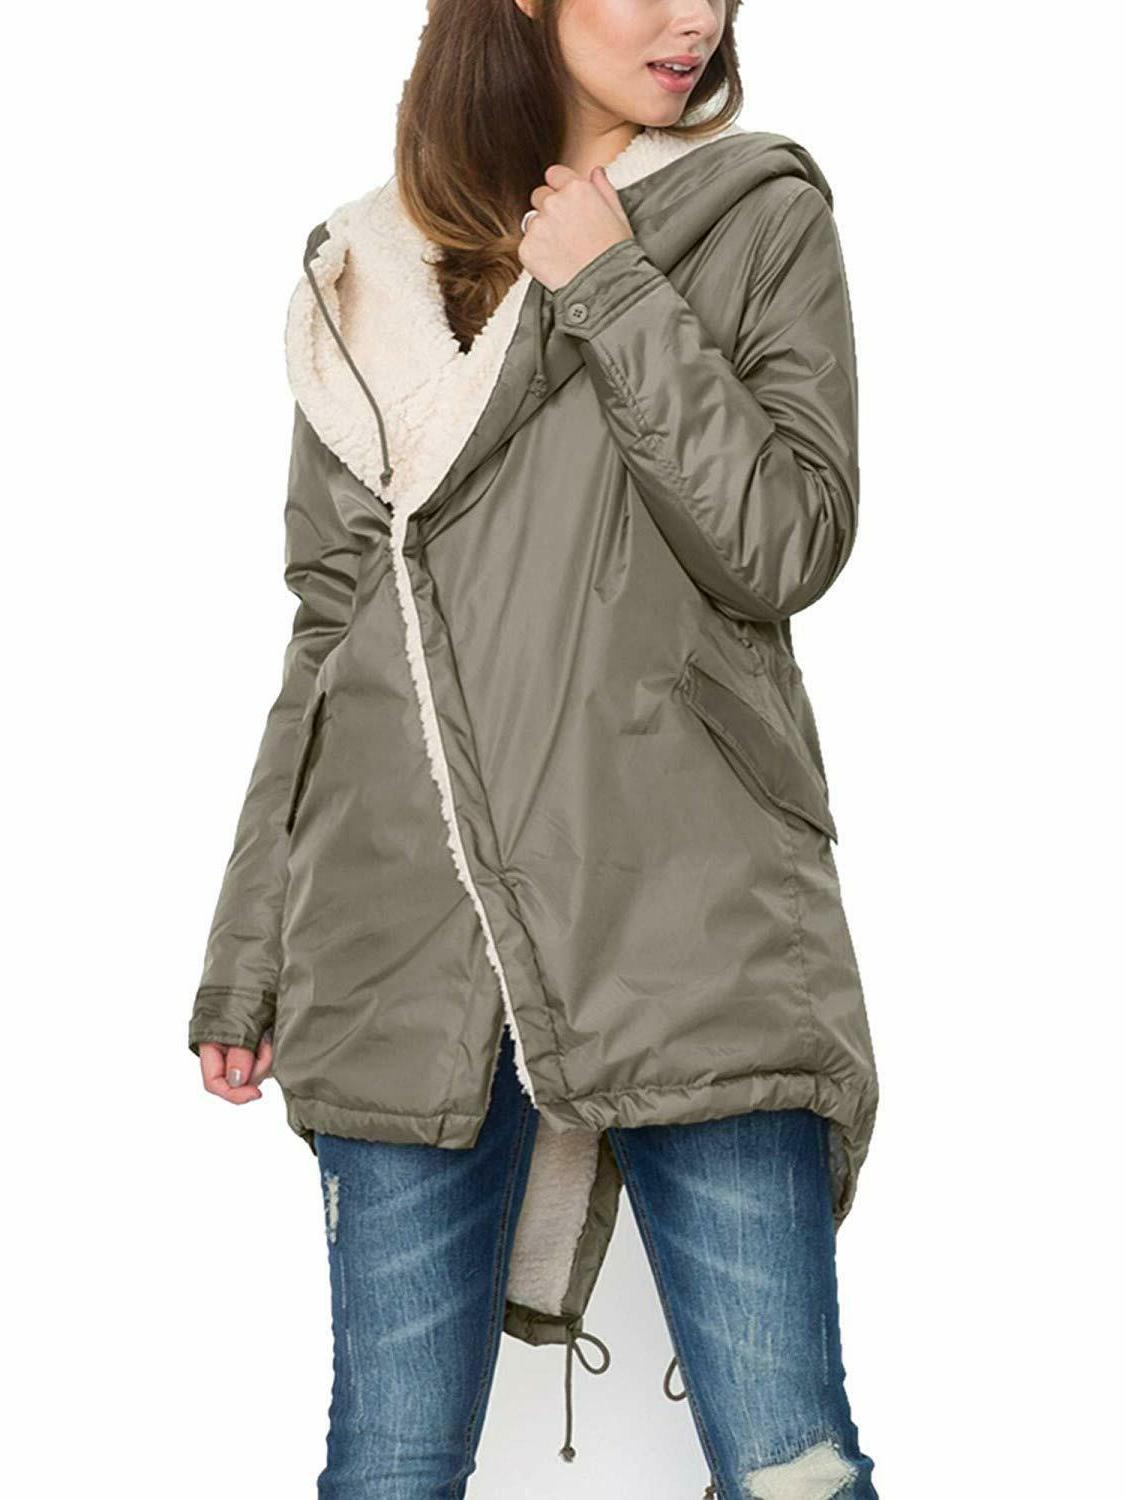 Sidefeel Collar Zip Coat Quilted Outwear Cardigan